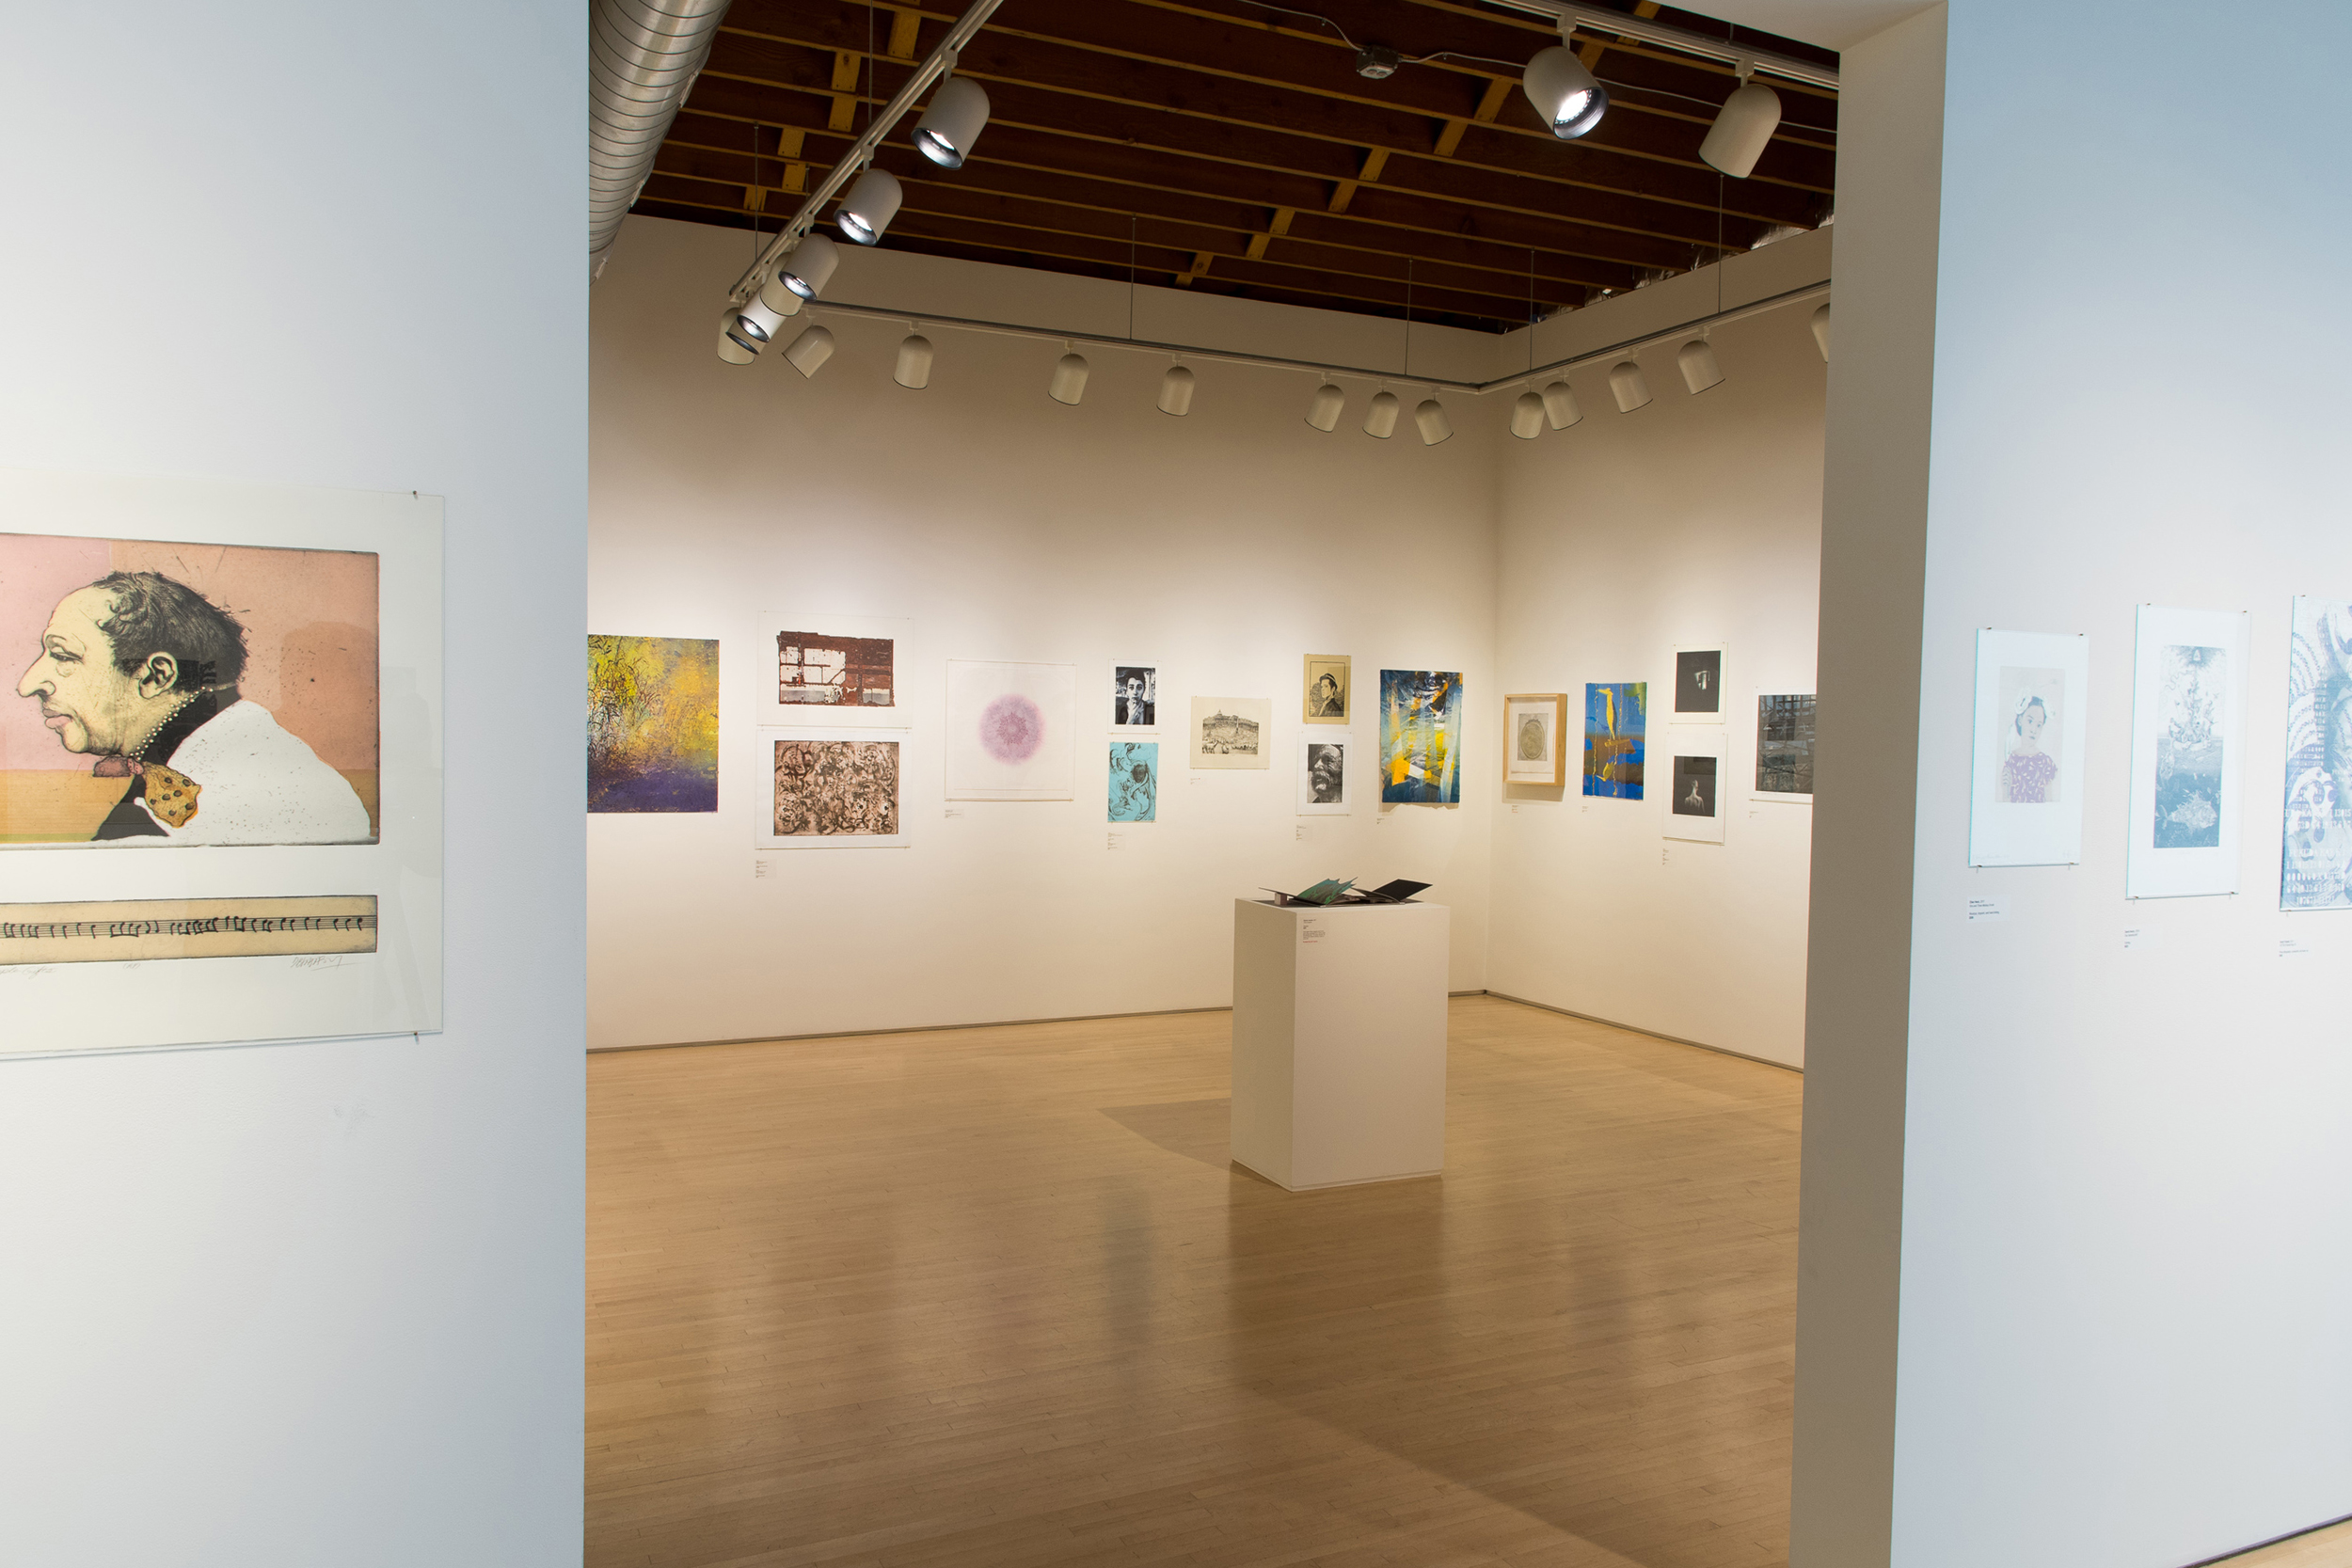 Highpoint PrintmakingStand Out Prints Exhibit180927a0356.JPG